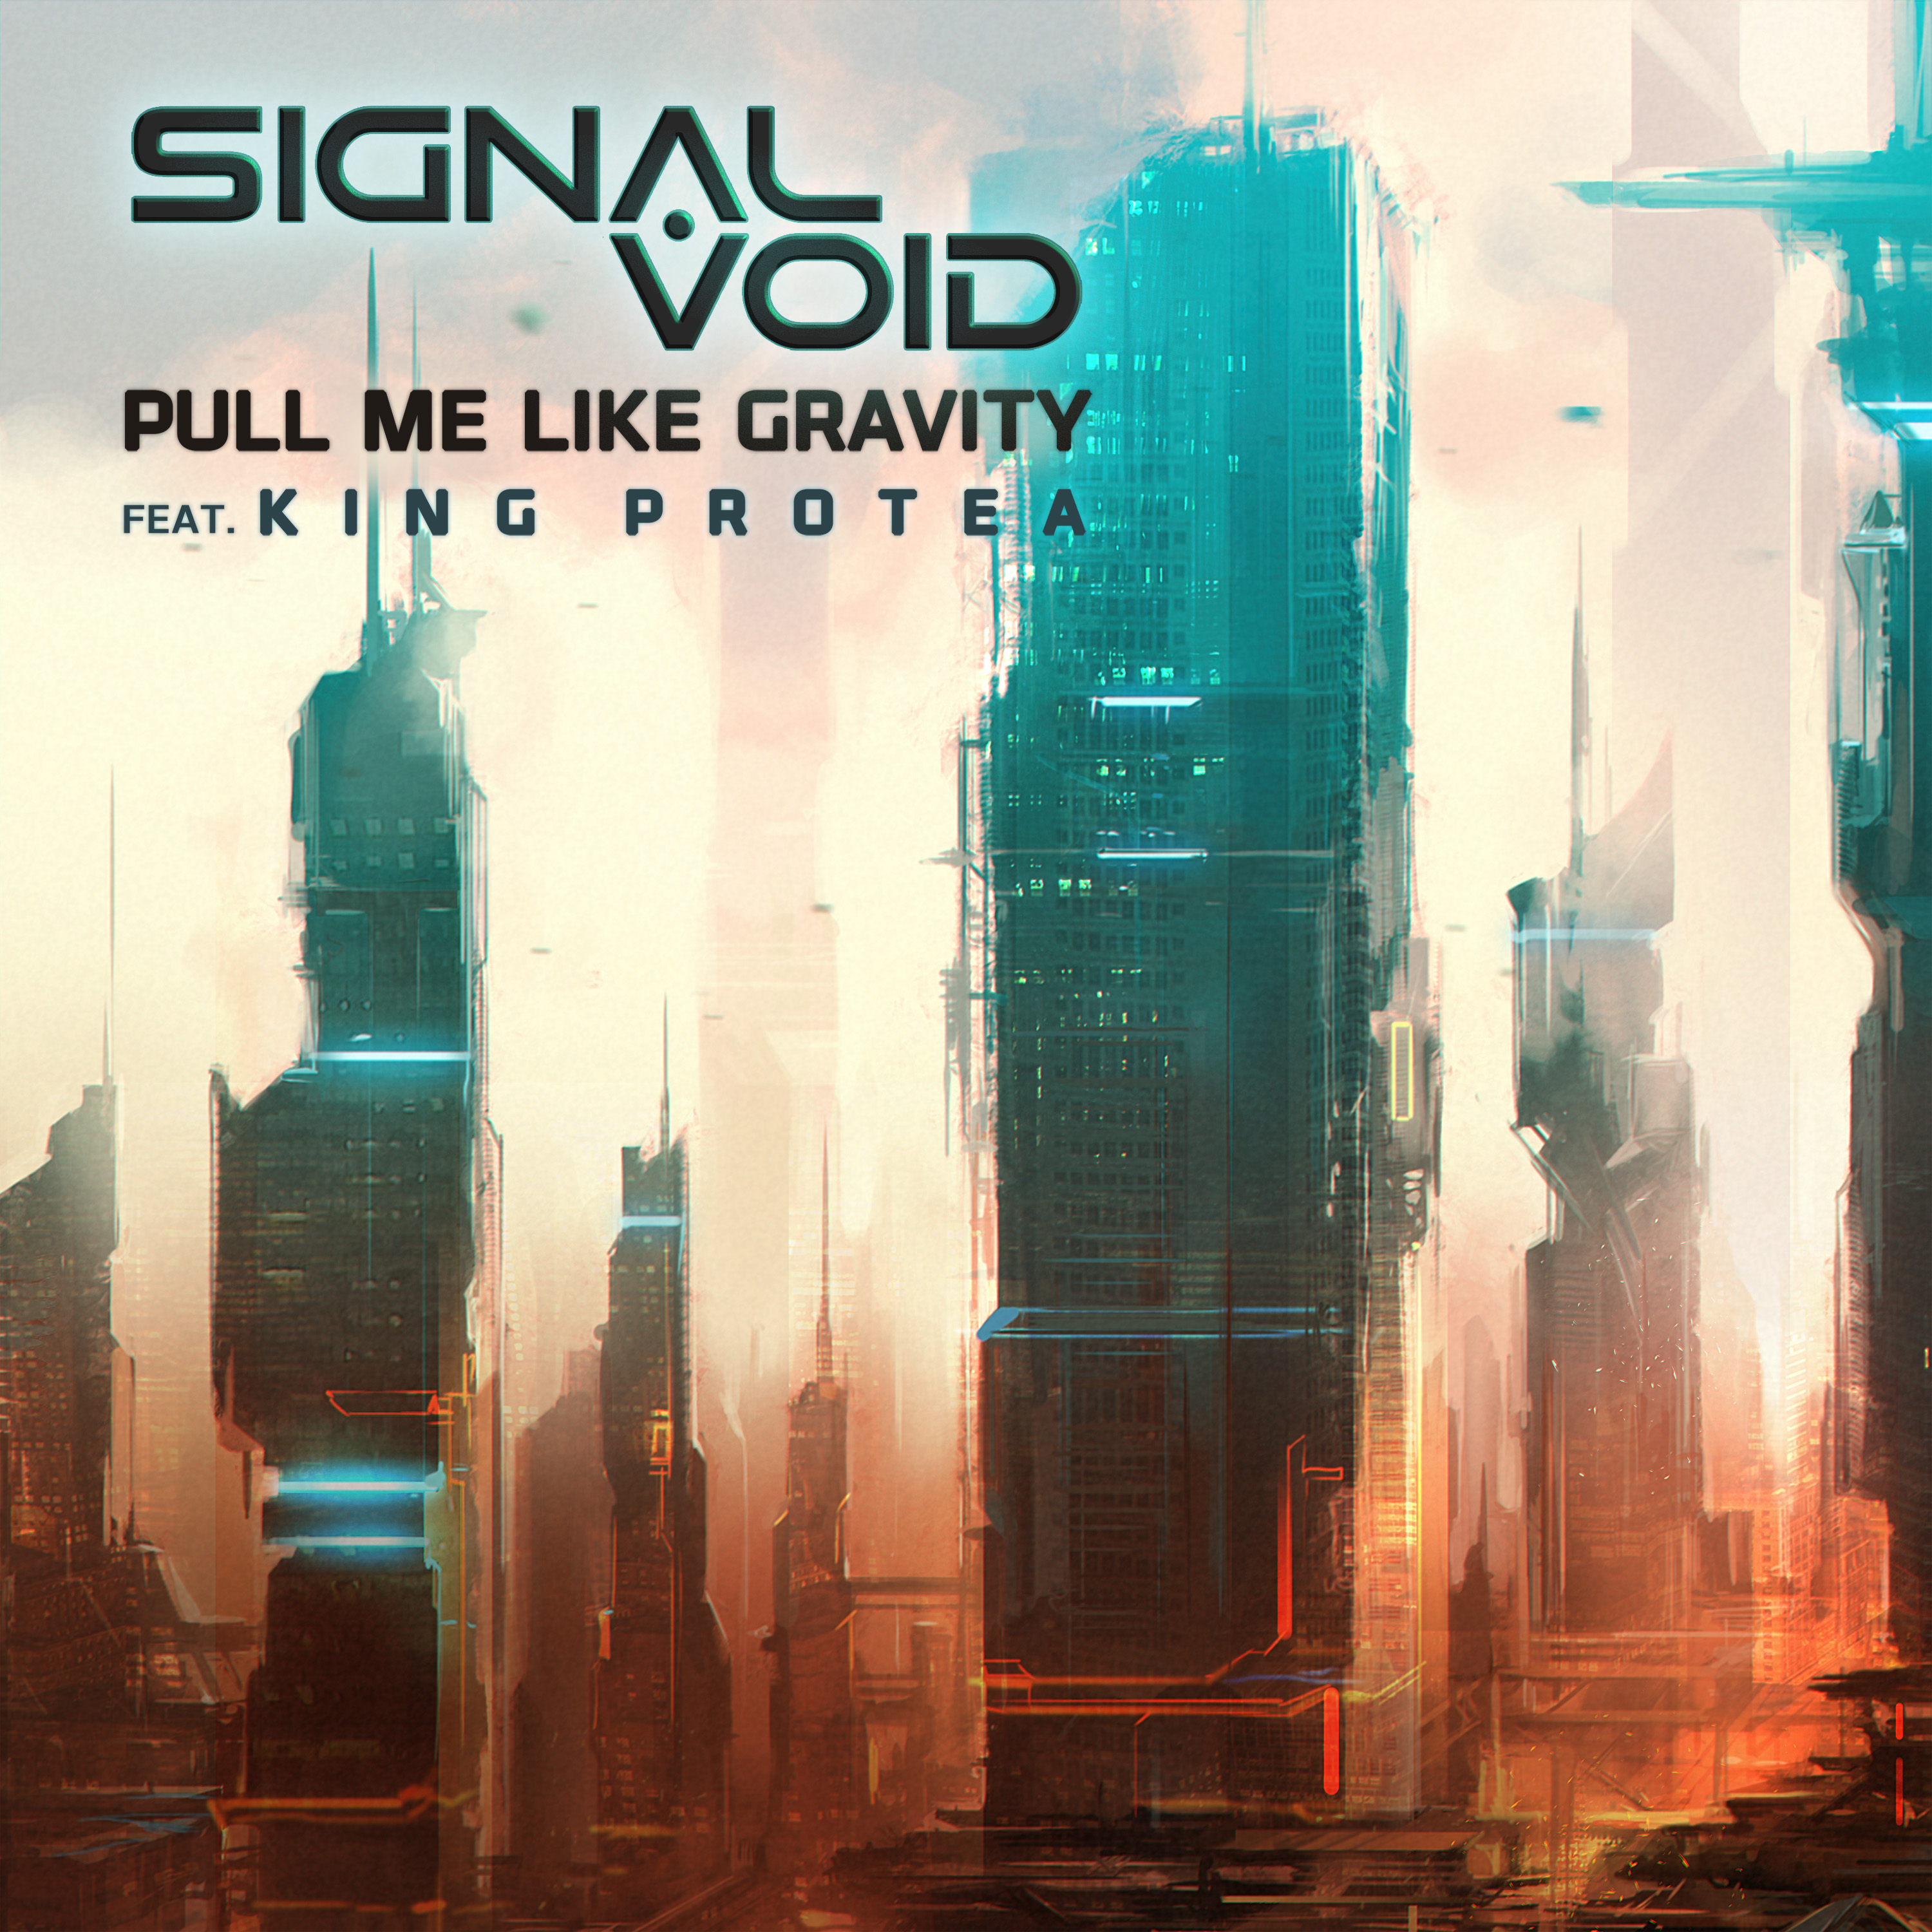 Signal Void - Pull Me Like Gravity (feat. King Protea) [Single] Image